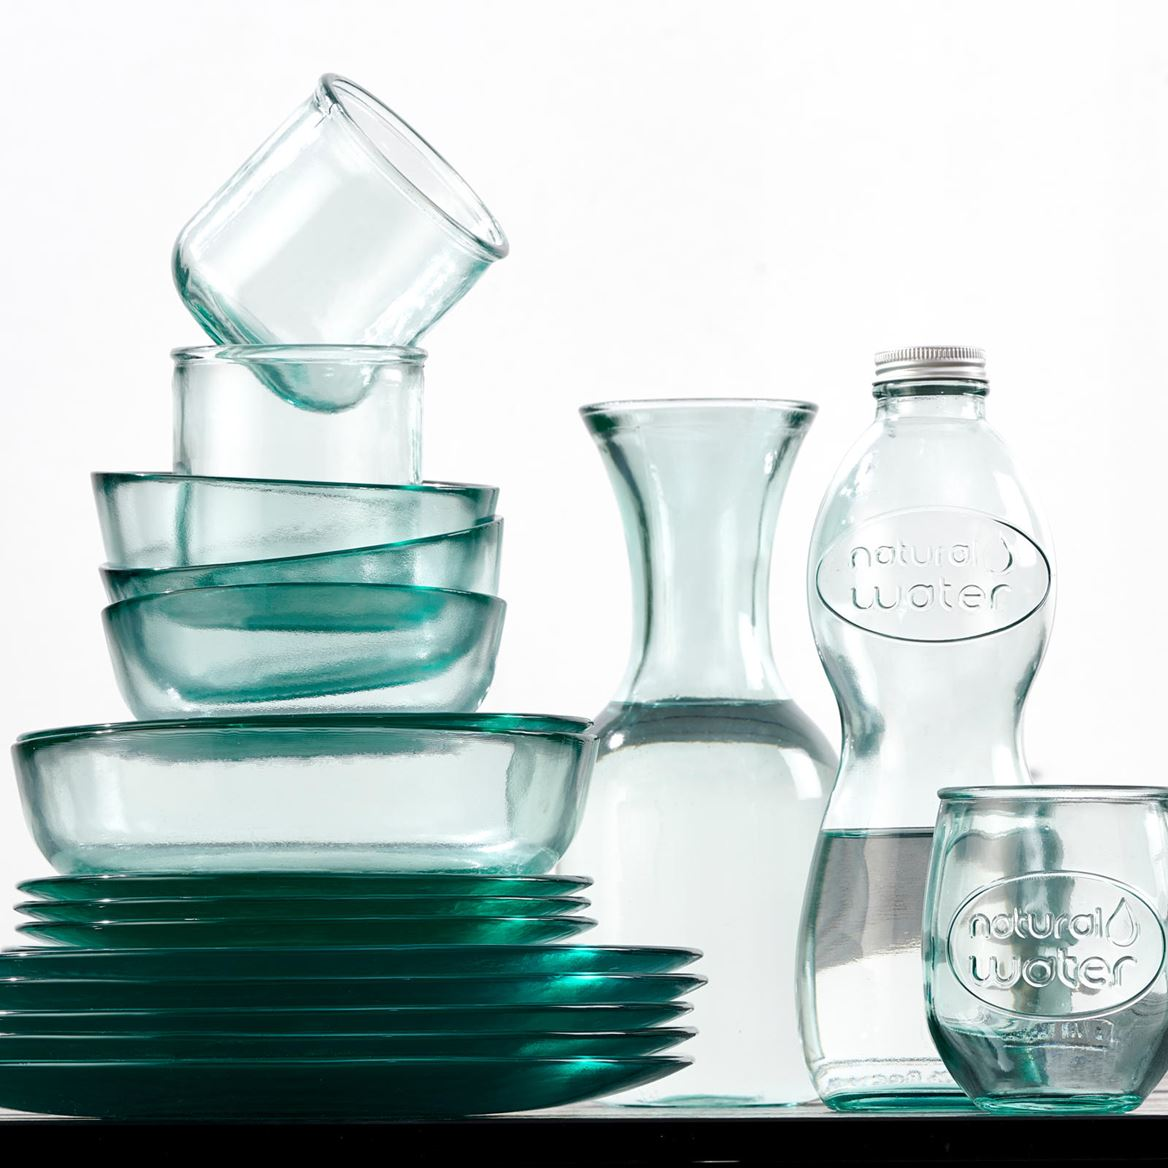 WATER Bouteille transparent H 24,5 cm_water-bouteille-transparent-h-24,5-cm